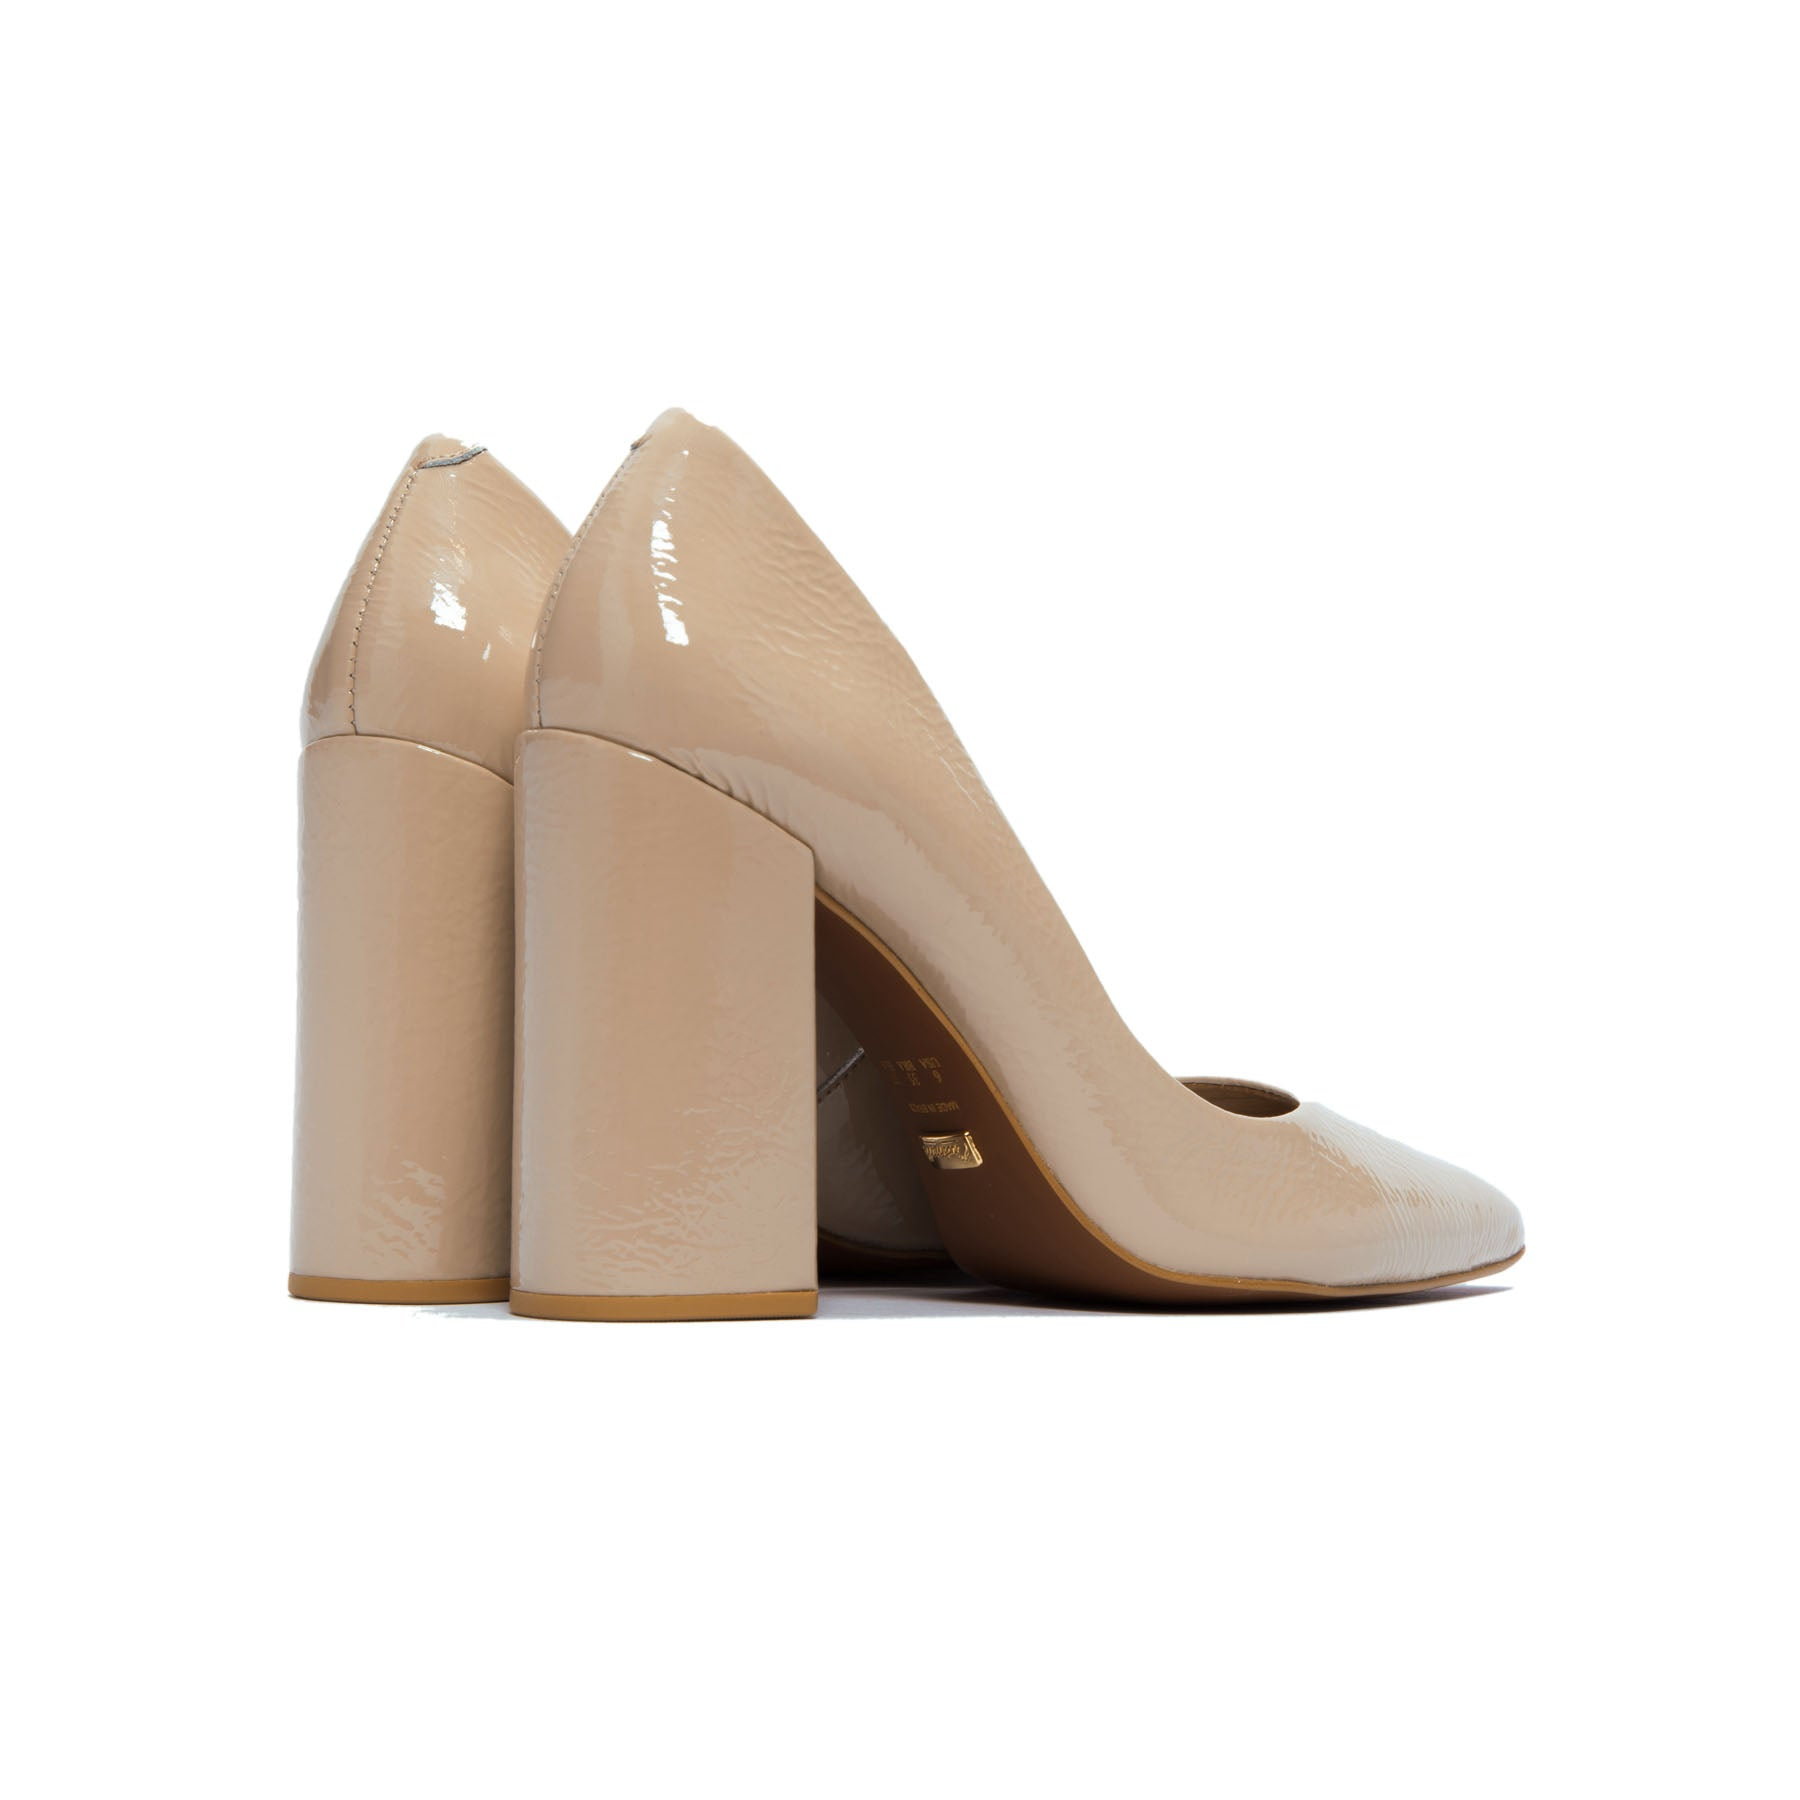 Ciana Nude Naplack Pumps